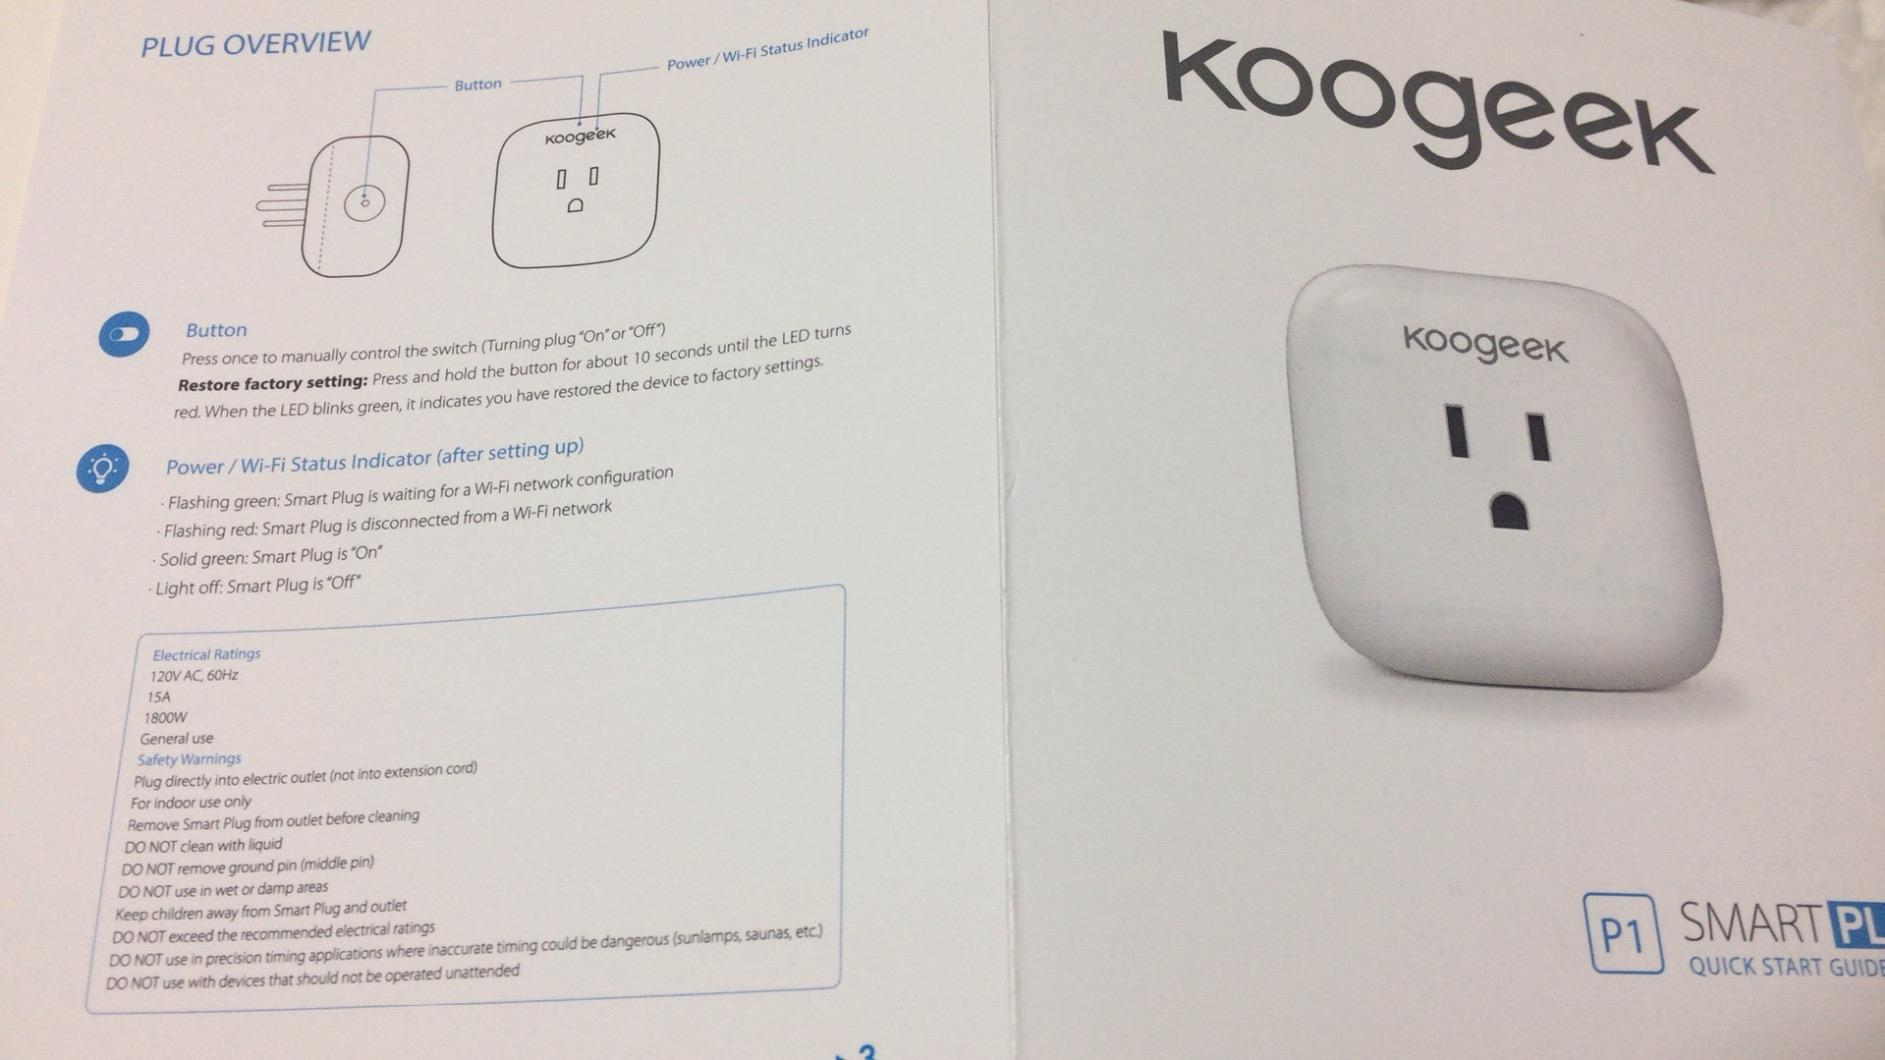 Koogeek Wi Fi Enabled Improved Smart Plug Works With Apple Homekit To Legally In Canada Add 240v Power Outlet From Stove